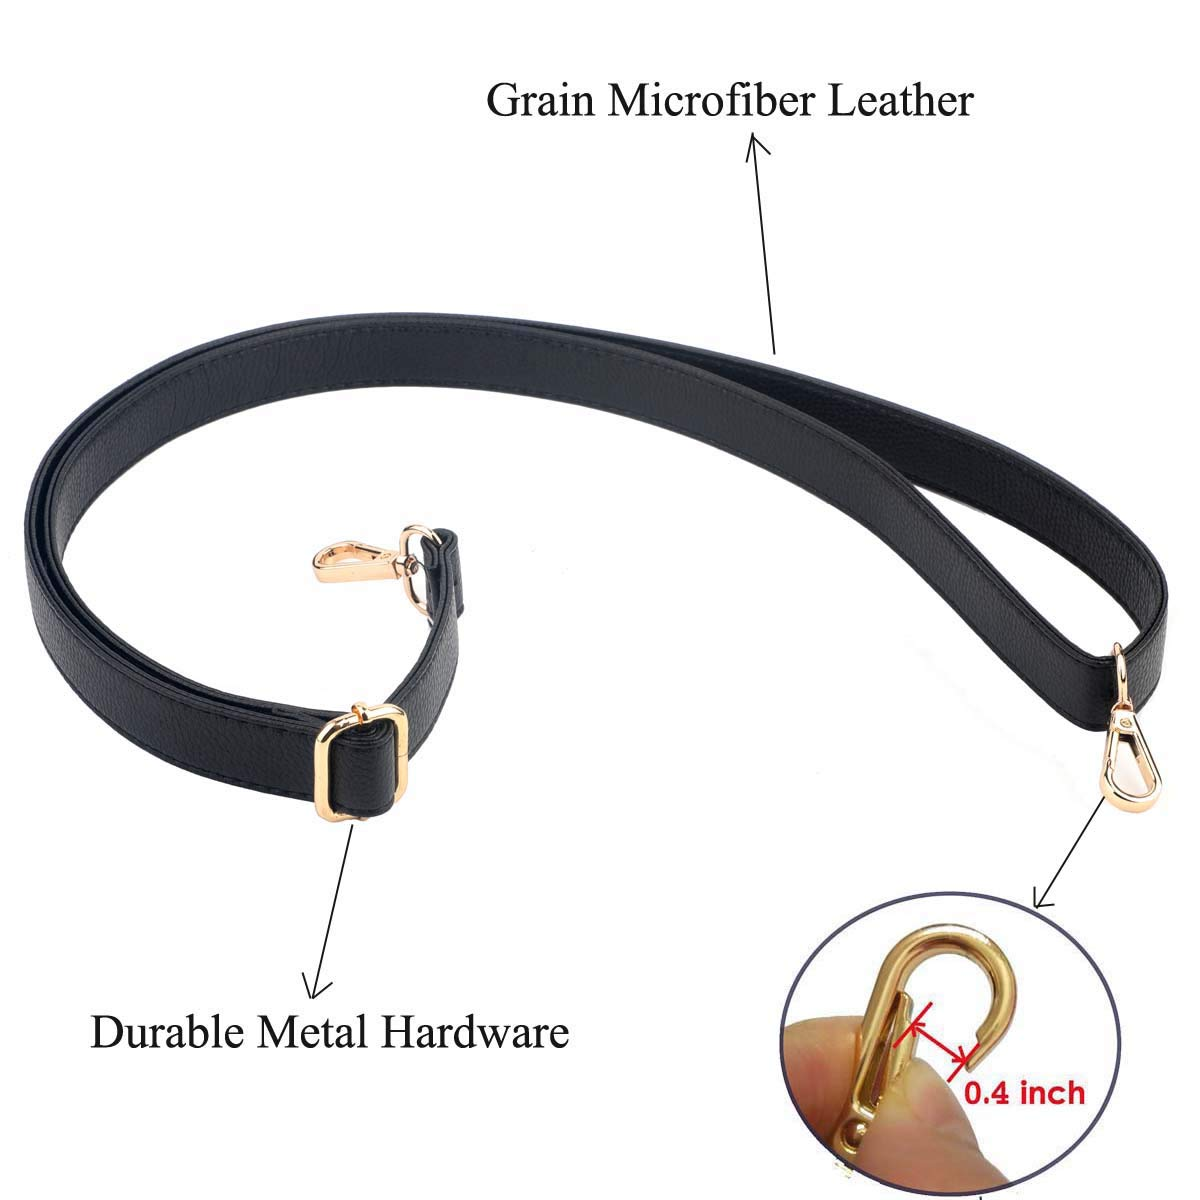 Adjustable for Crossbody Bag or Handbag Beaulegan Purse Strap Replacement Microfiber Leather Black with Gold Clasp 34-59 Inch Long 0.5 Inch Wide